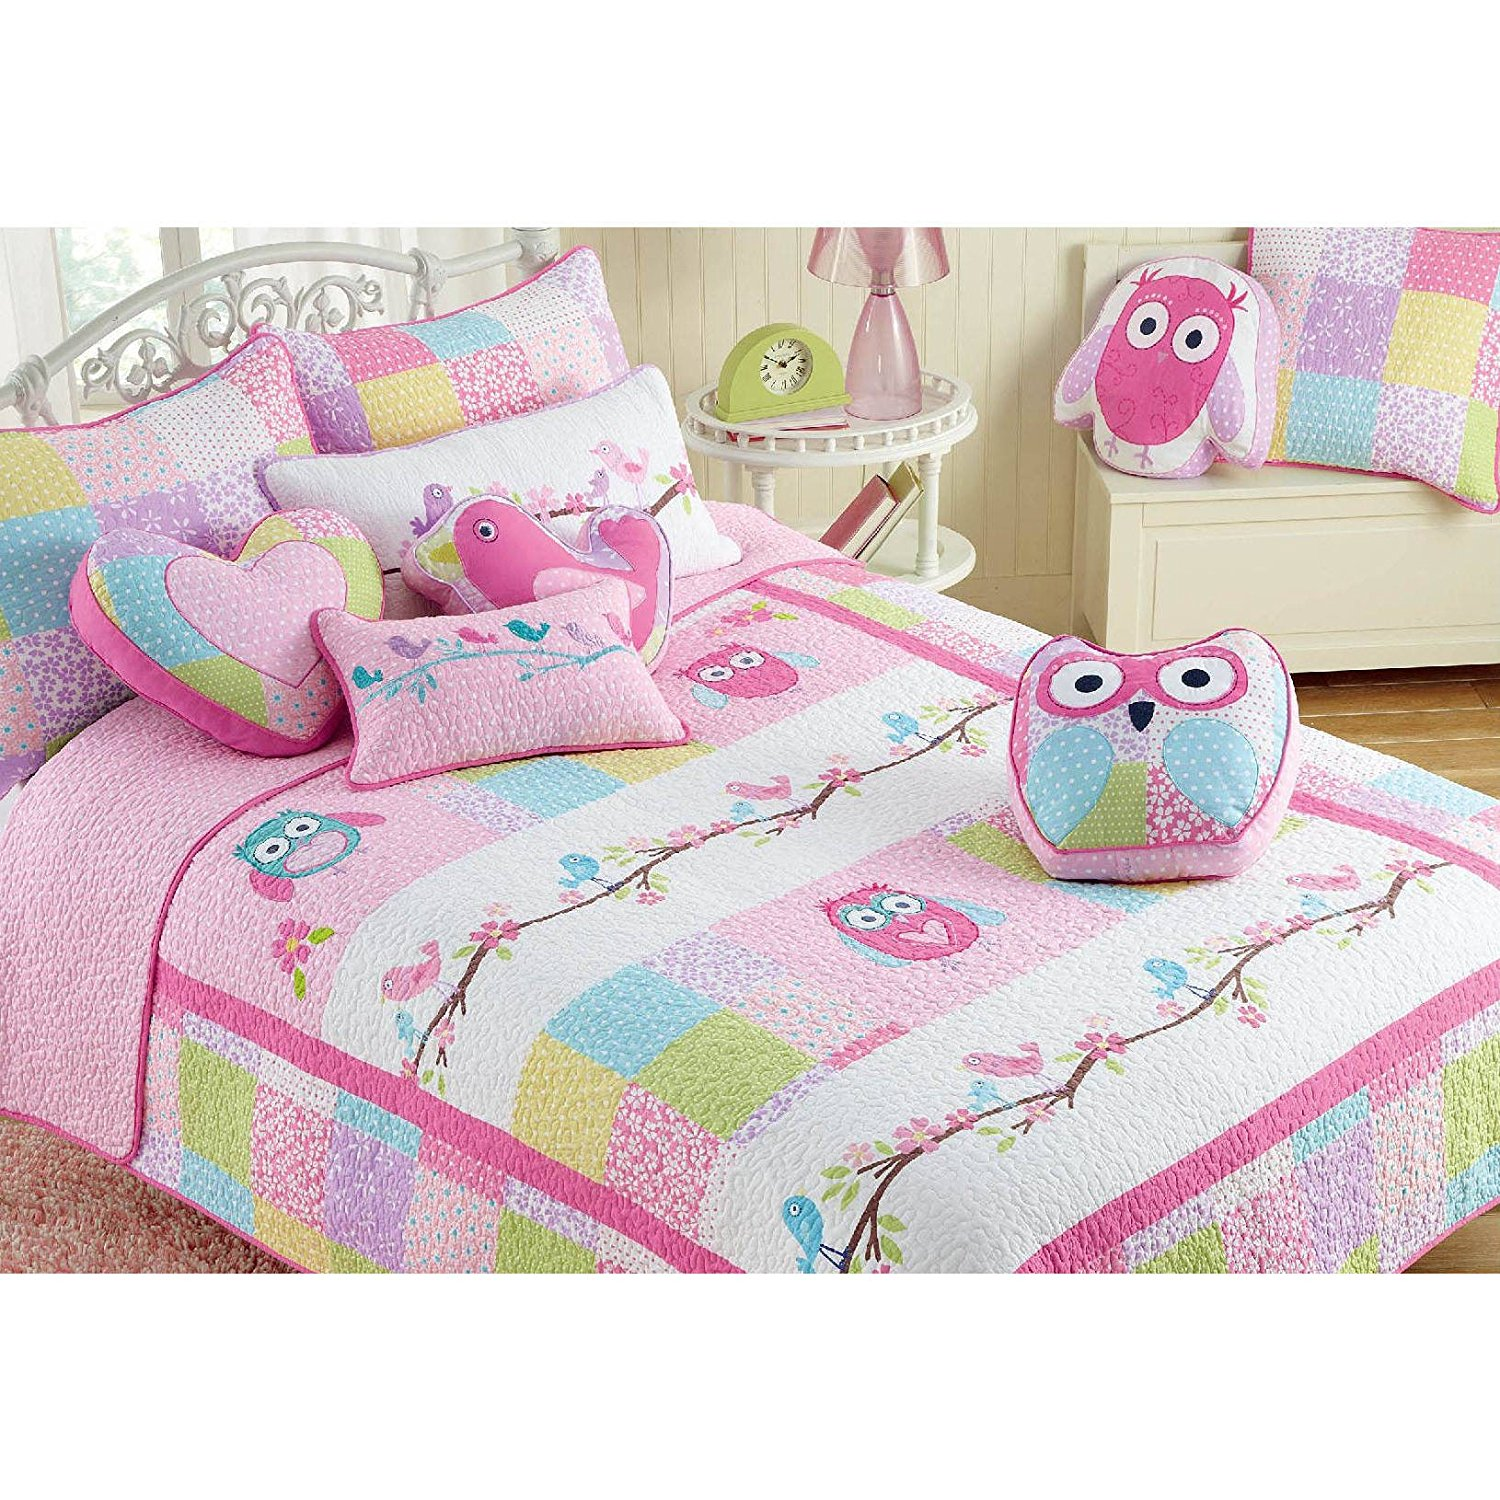 3 Piece Kids Girls Pink Owl Theme Queen Quilt Set, Adorable Animal Print Bedding, Nocturnal Birds Pink White Green Floral Pattern Flowers Horizontal Stripes Dancing Owls Contemporary, Polyester